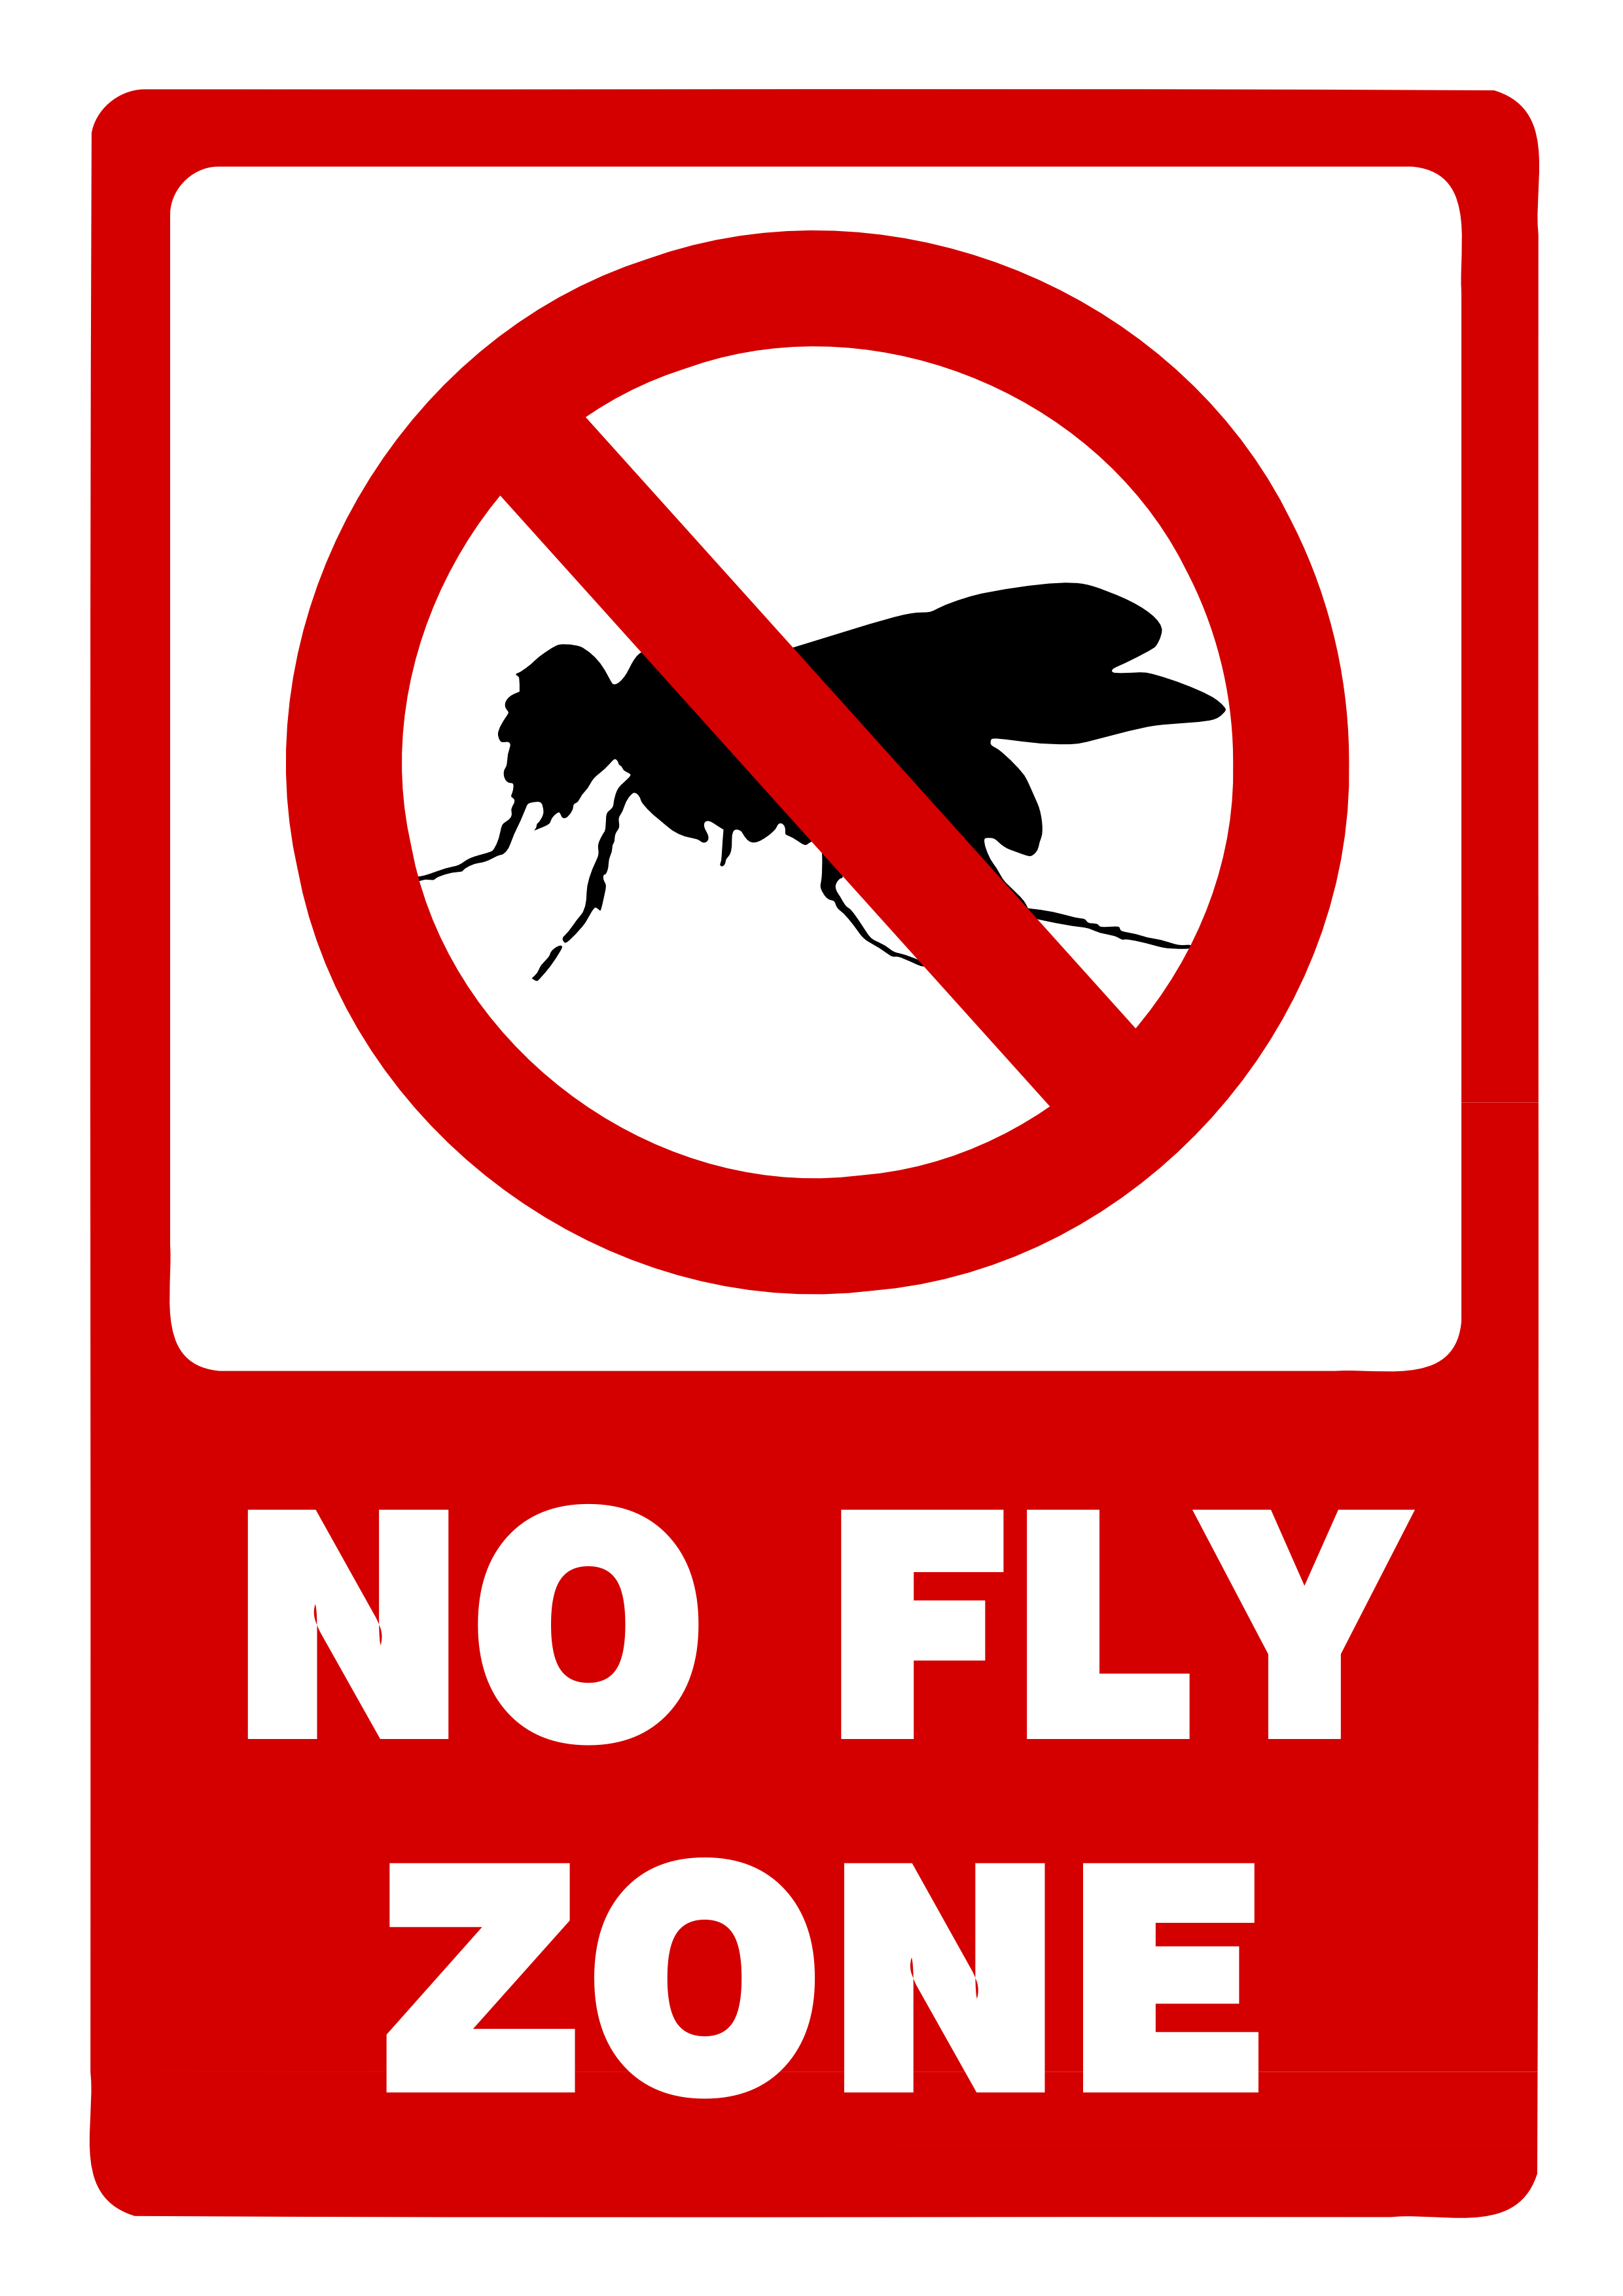 no fly zone  signage  by icqgirl on deviantart clip art of a house on an island clip art of a house needing repairs